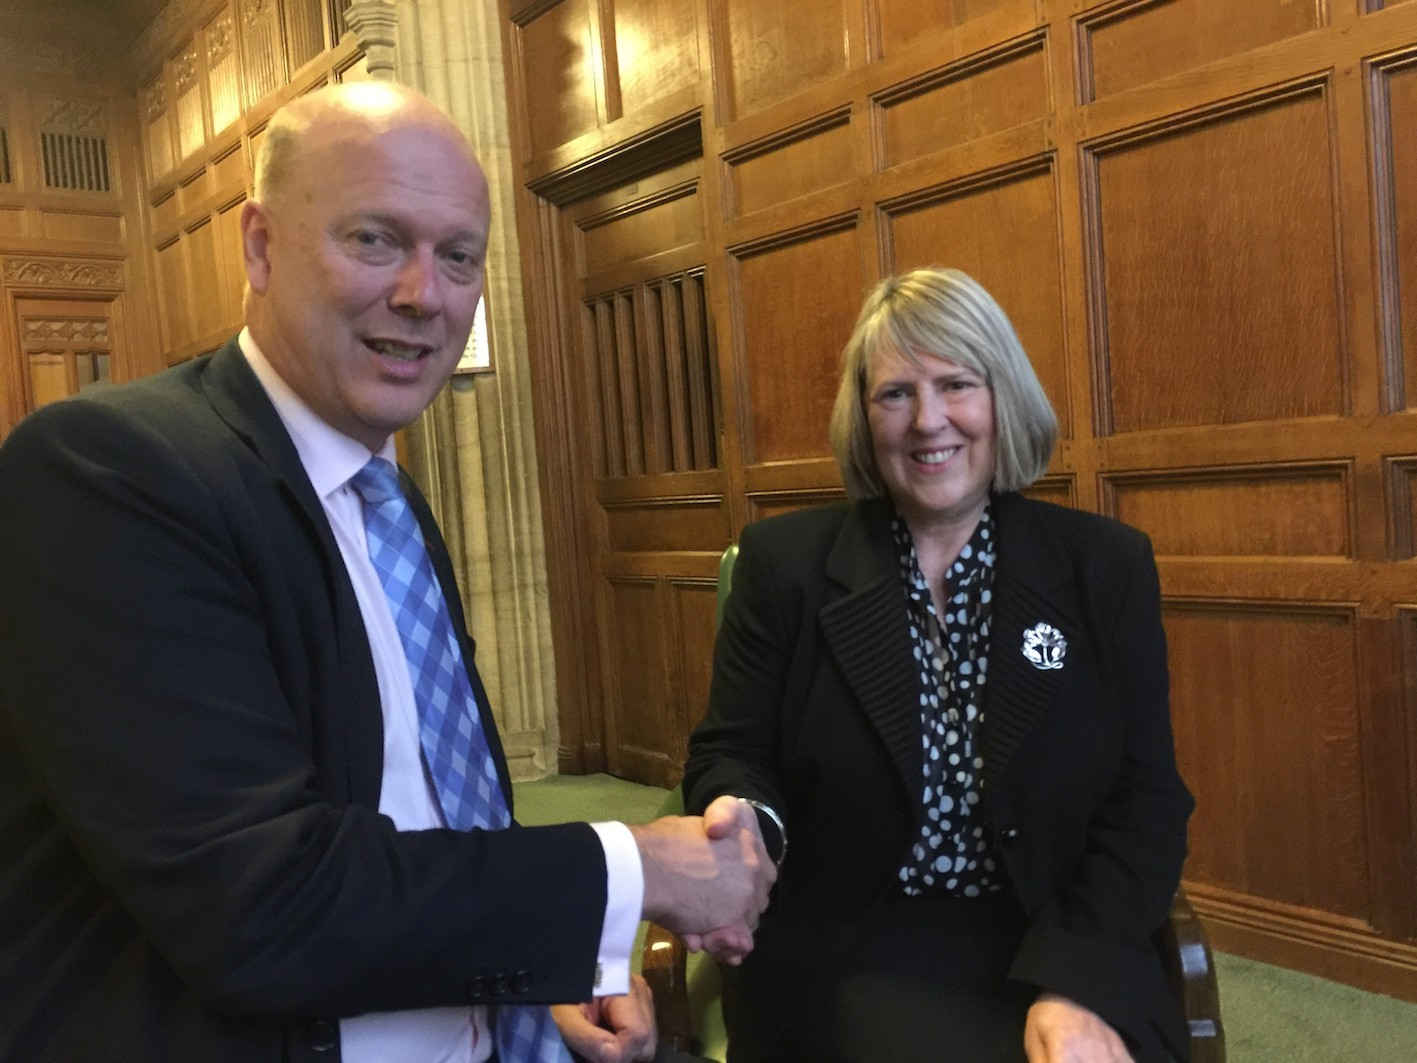 Fiona Bruce MP with the Secretary of State for Transport, The Rt Hon Chris Grayling MP in Parliament